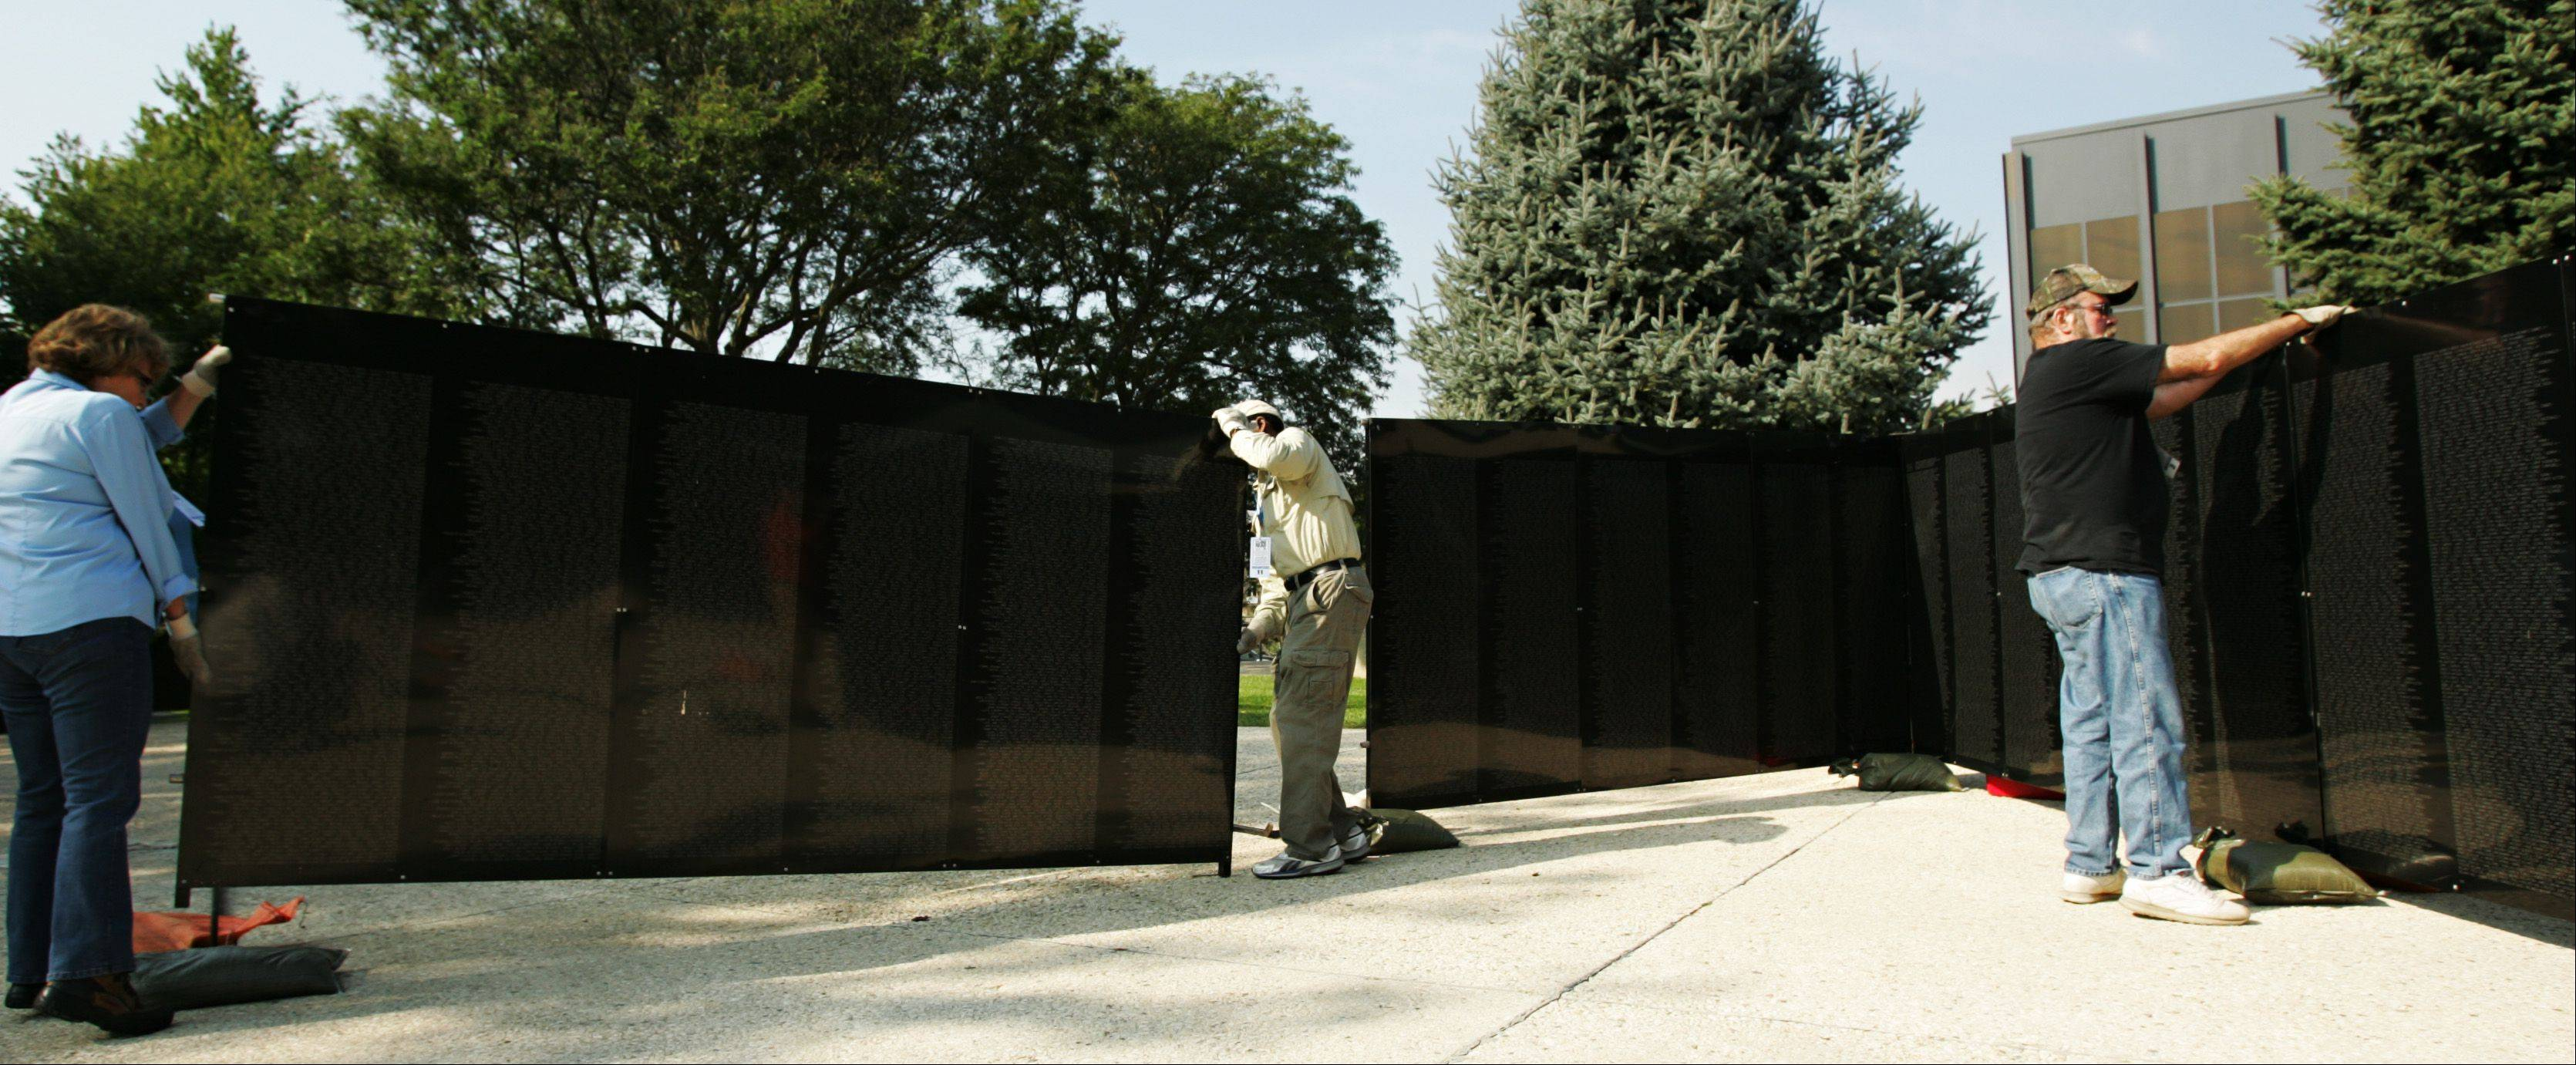 Several weeks ago the traveling Wall That Heals exhibit made a stop in downtown Elgin. It's a small-scale replica of the Vietnam Veterans Memorial in Washington, D.C. I was impressed with the volunteerism that went into the entire project - not just to set up the massive display, but what it took to stand watch over it 24 hours a day while it was here. This photo was published in the Perspective column in the print edition.